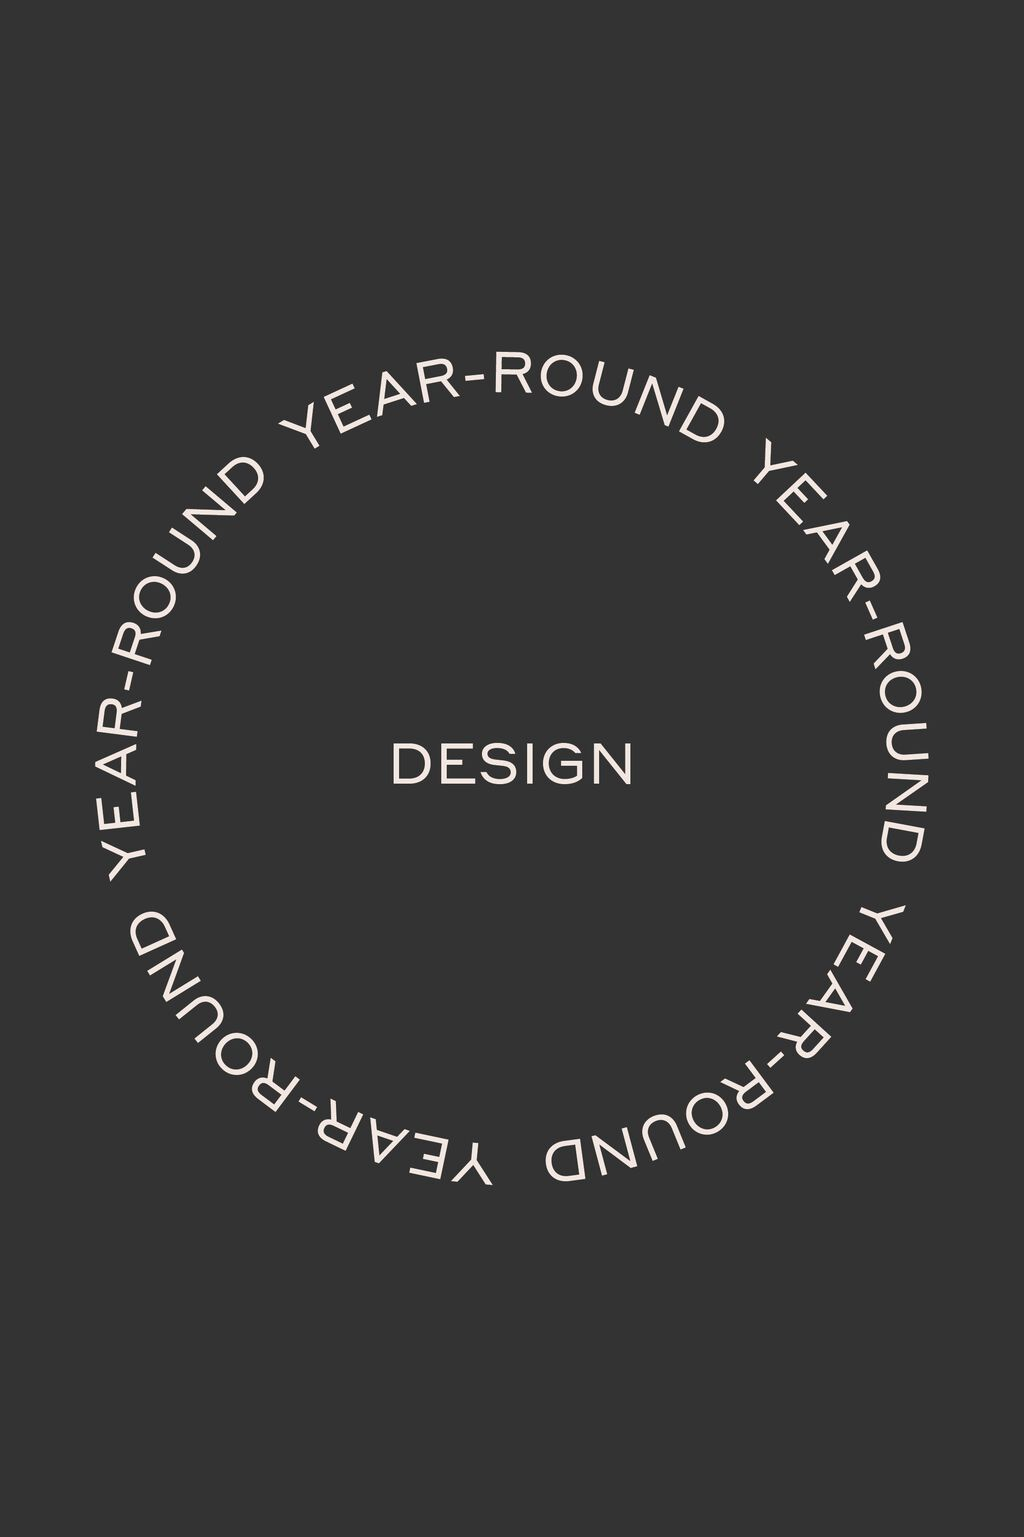 Infographic showing year round design